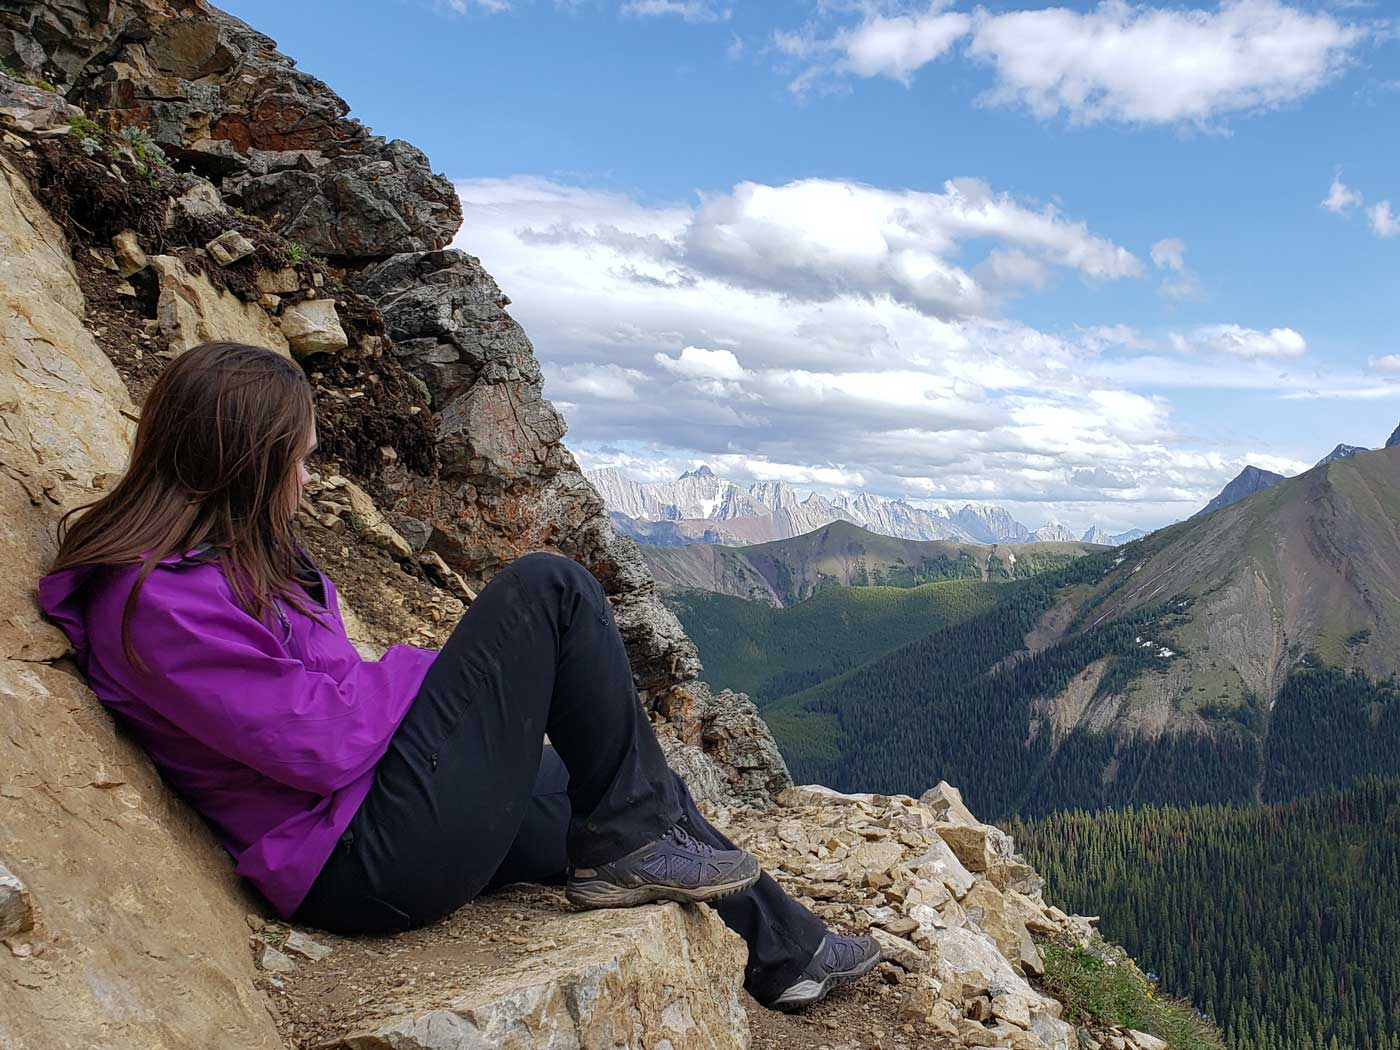 Jolene Rempel looking at mountains from Guinn's Pass Trail in Kananaskis Country, Alberta, Canada.